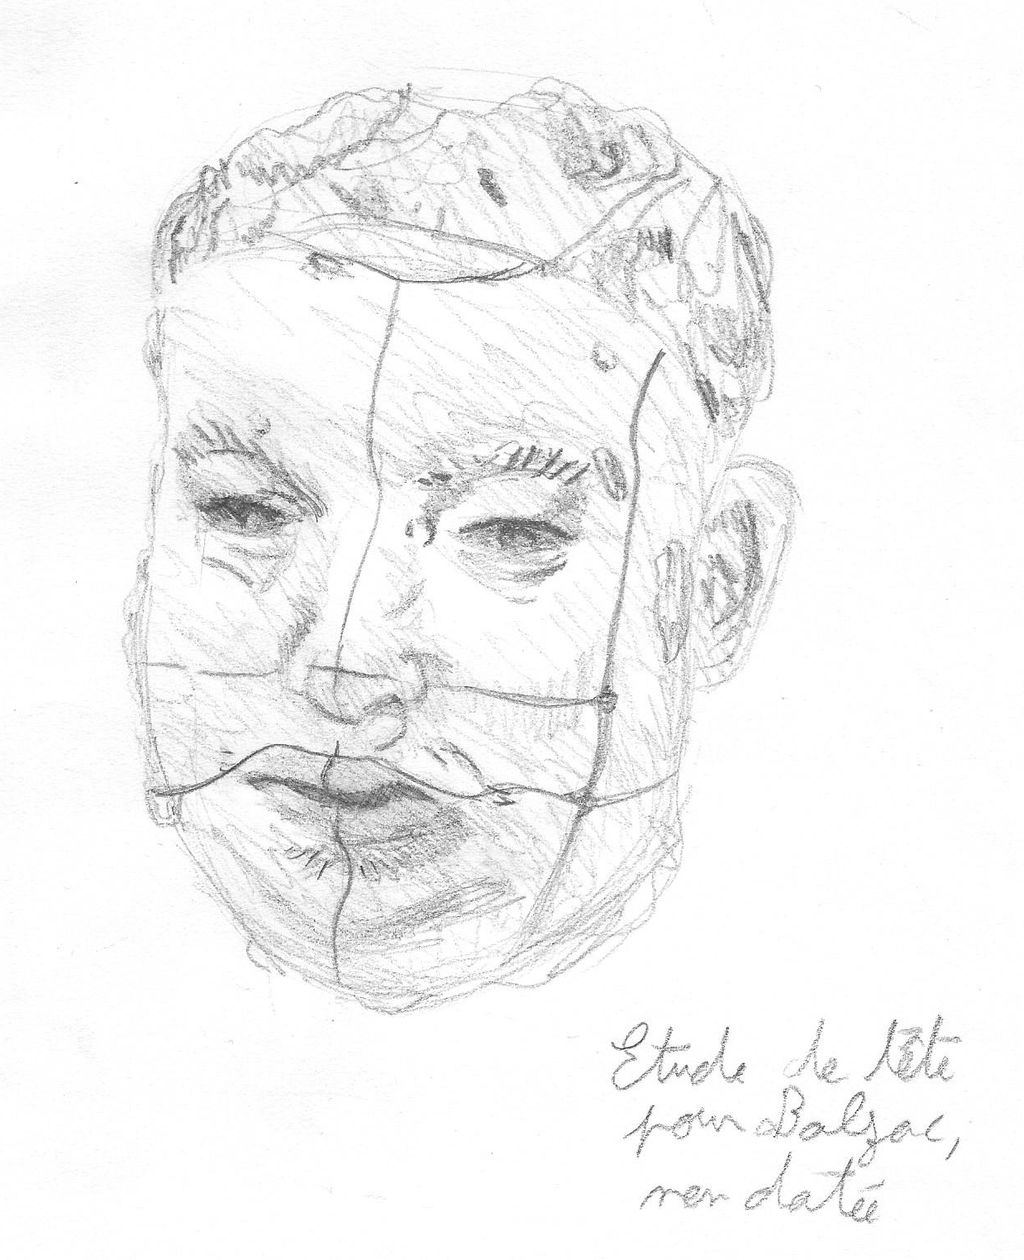 1024x1260 Rodin Sculpture Sketch (Balzac Head Study) By Pixelmitch